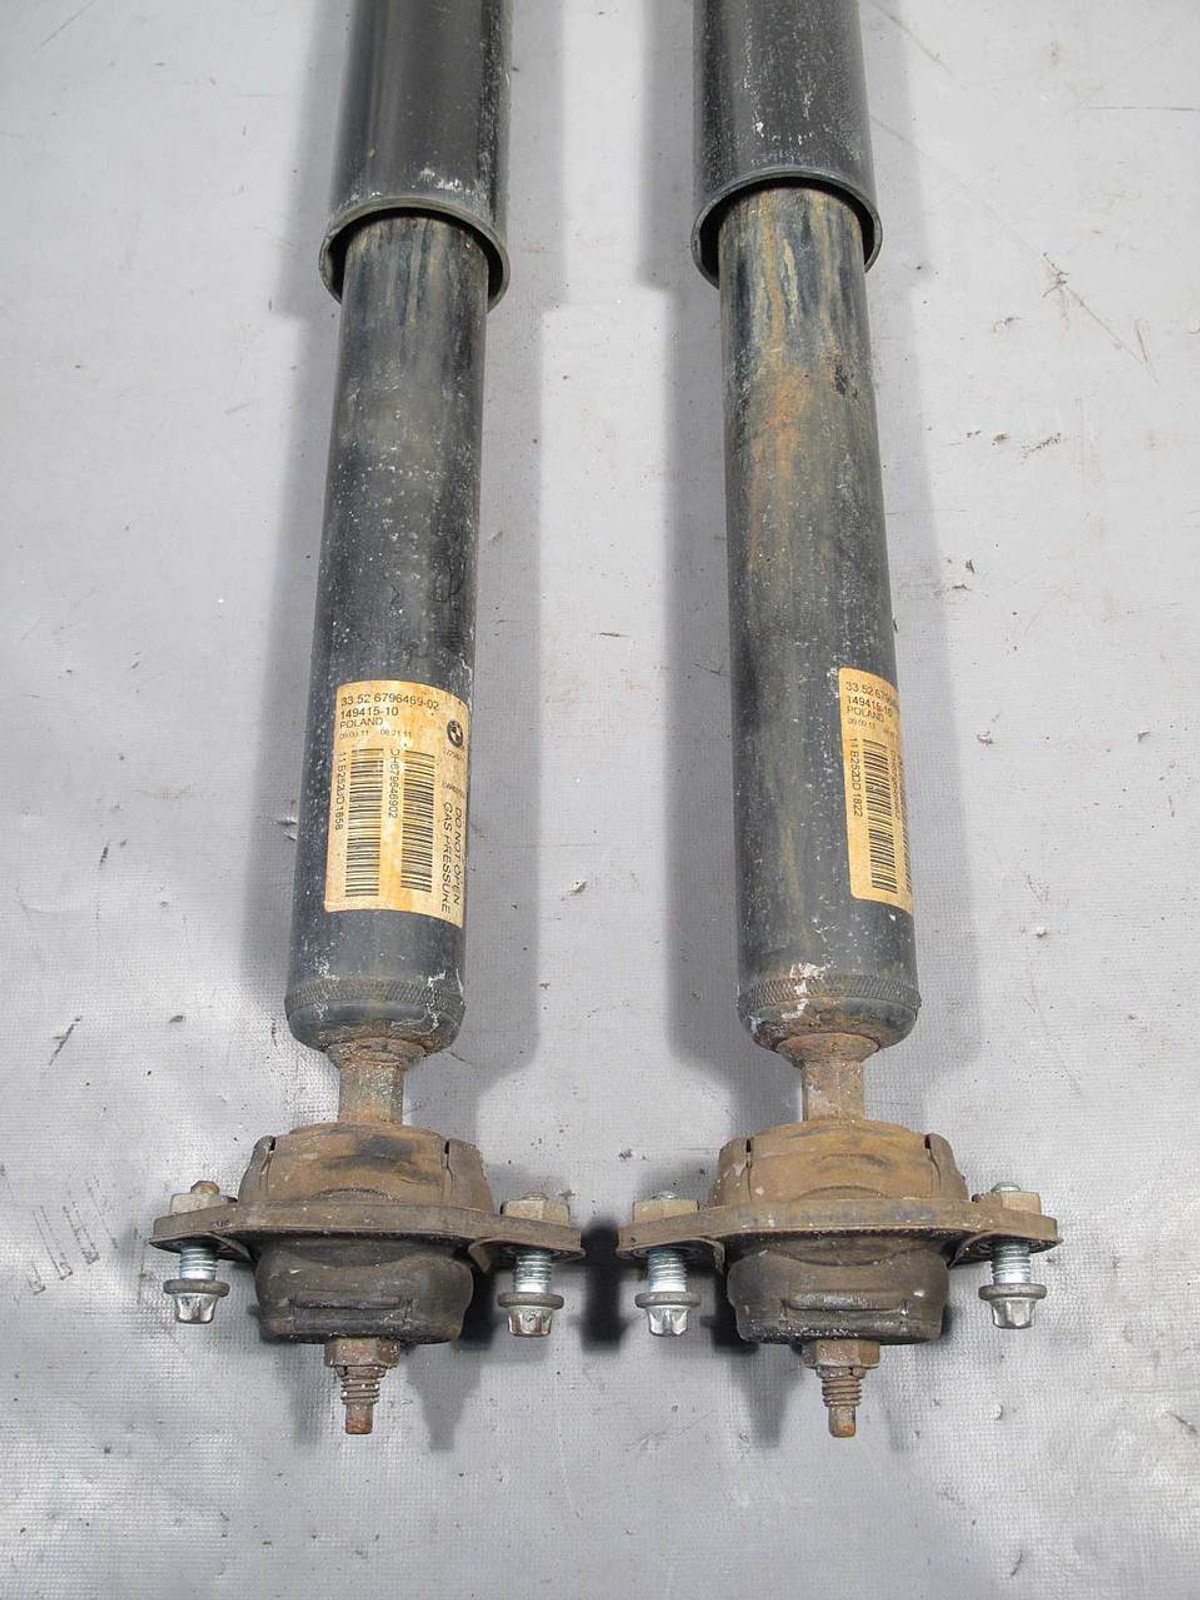 BMW E90 E92 3-Series AWD xDrive Factory Rear Axle Shock Absorber Pair  2010-2013